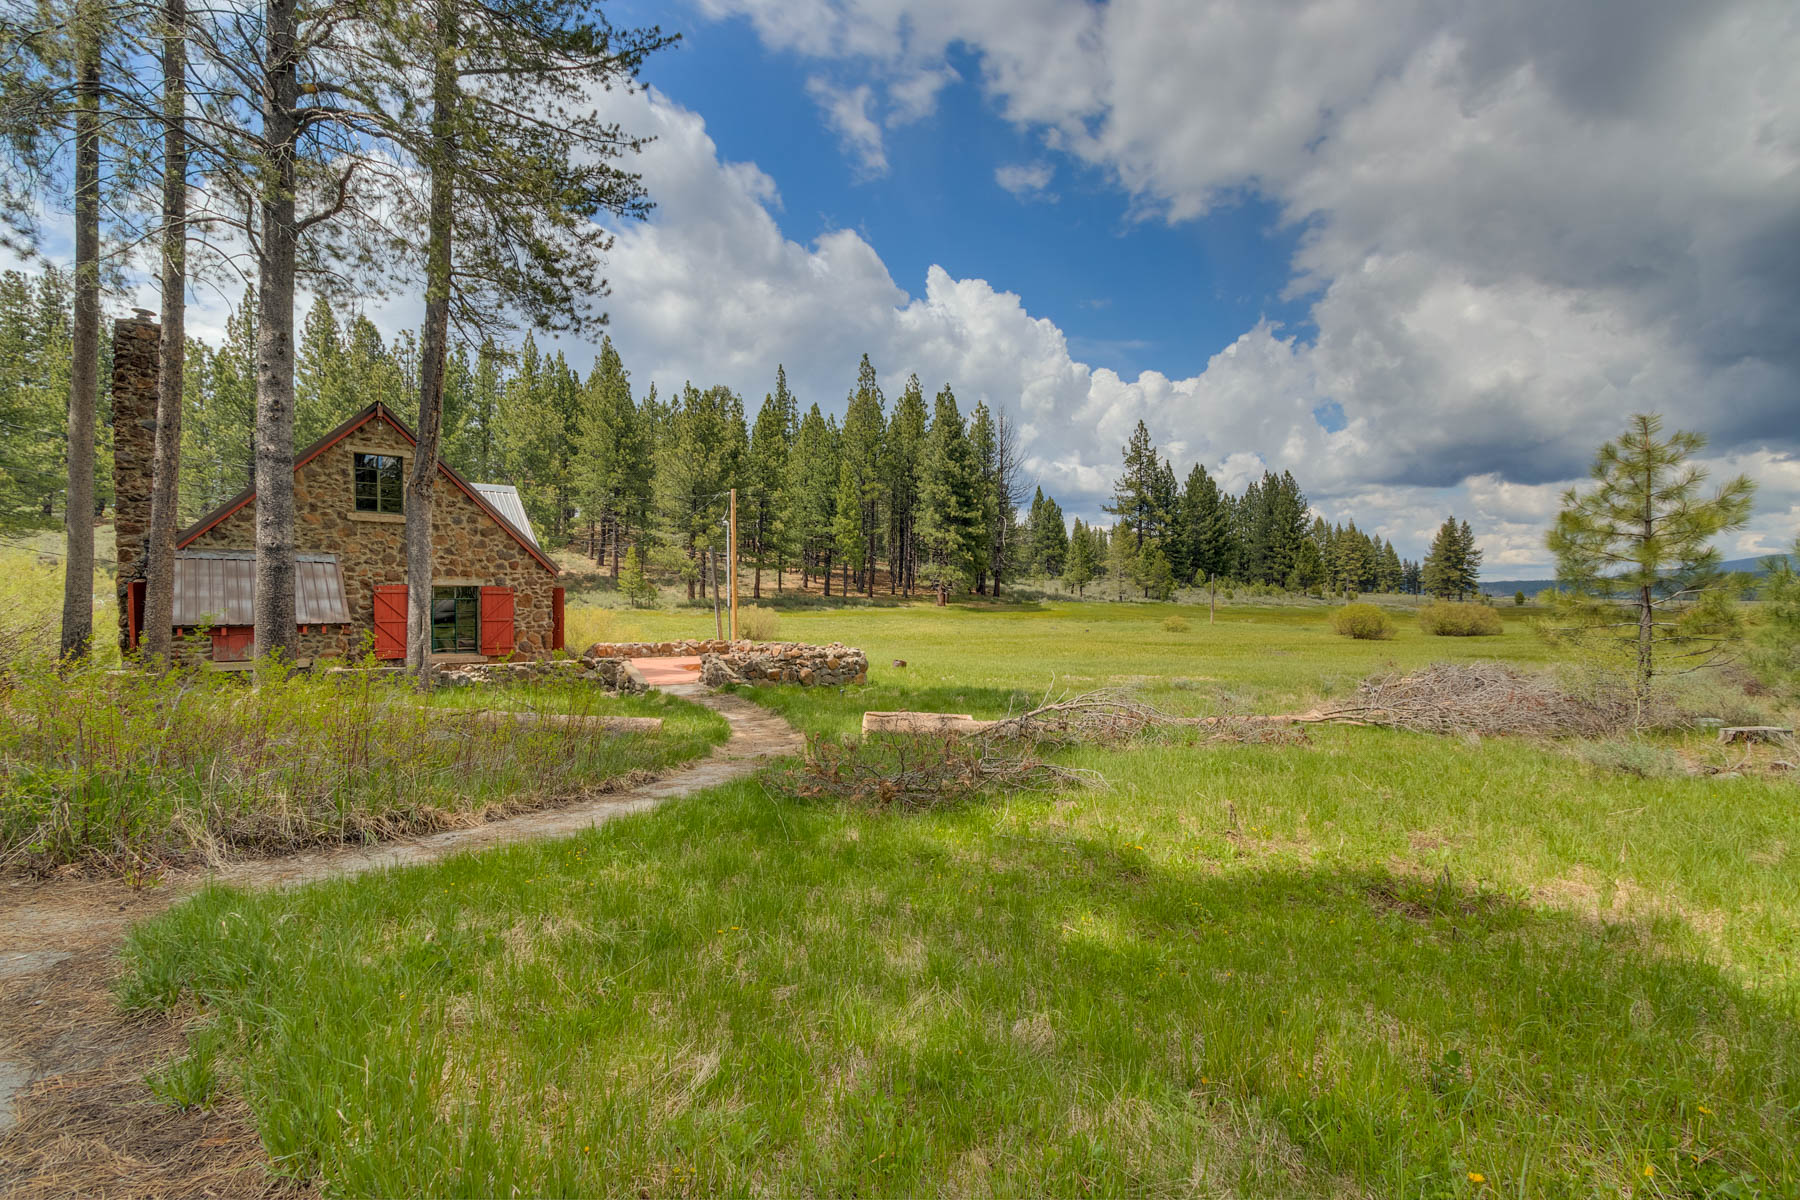 Additional photo for property listing at 9755 Joerger Ranch Road, Truckee, CA 96161 9755 Joerger Ranch Road Truckee, California 96161 United States